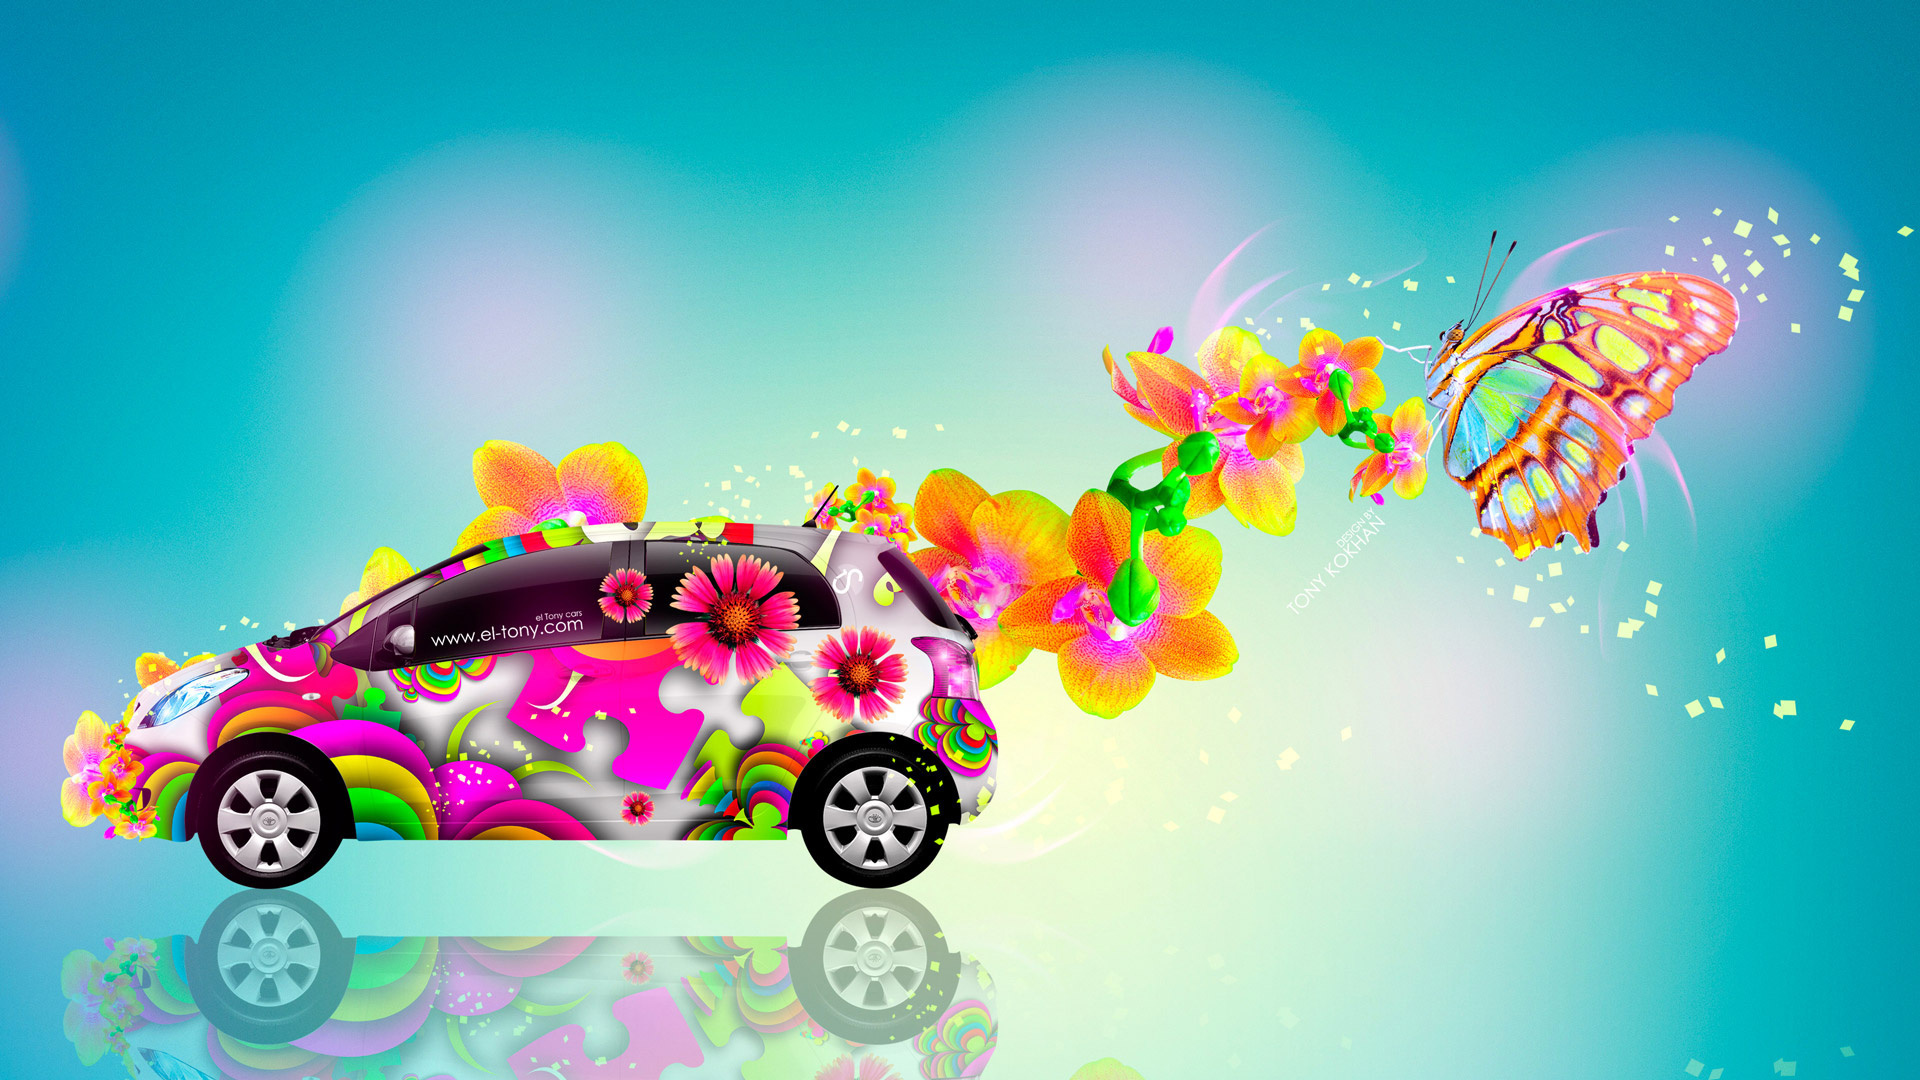 tony kokhan, toyota, vitz, jdm, side, abstract, aerography, fantasy, butterfly, flowers, car, multicolors, blue, yellow, el tony cars, photoshop, design, art, style, hd wallpapers, тони кохан, фотошоп, дизайн, тойота, витц, вид сбоку, аэрография, абстракт